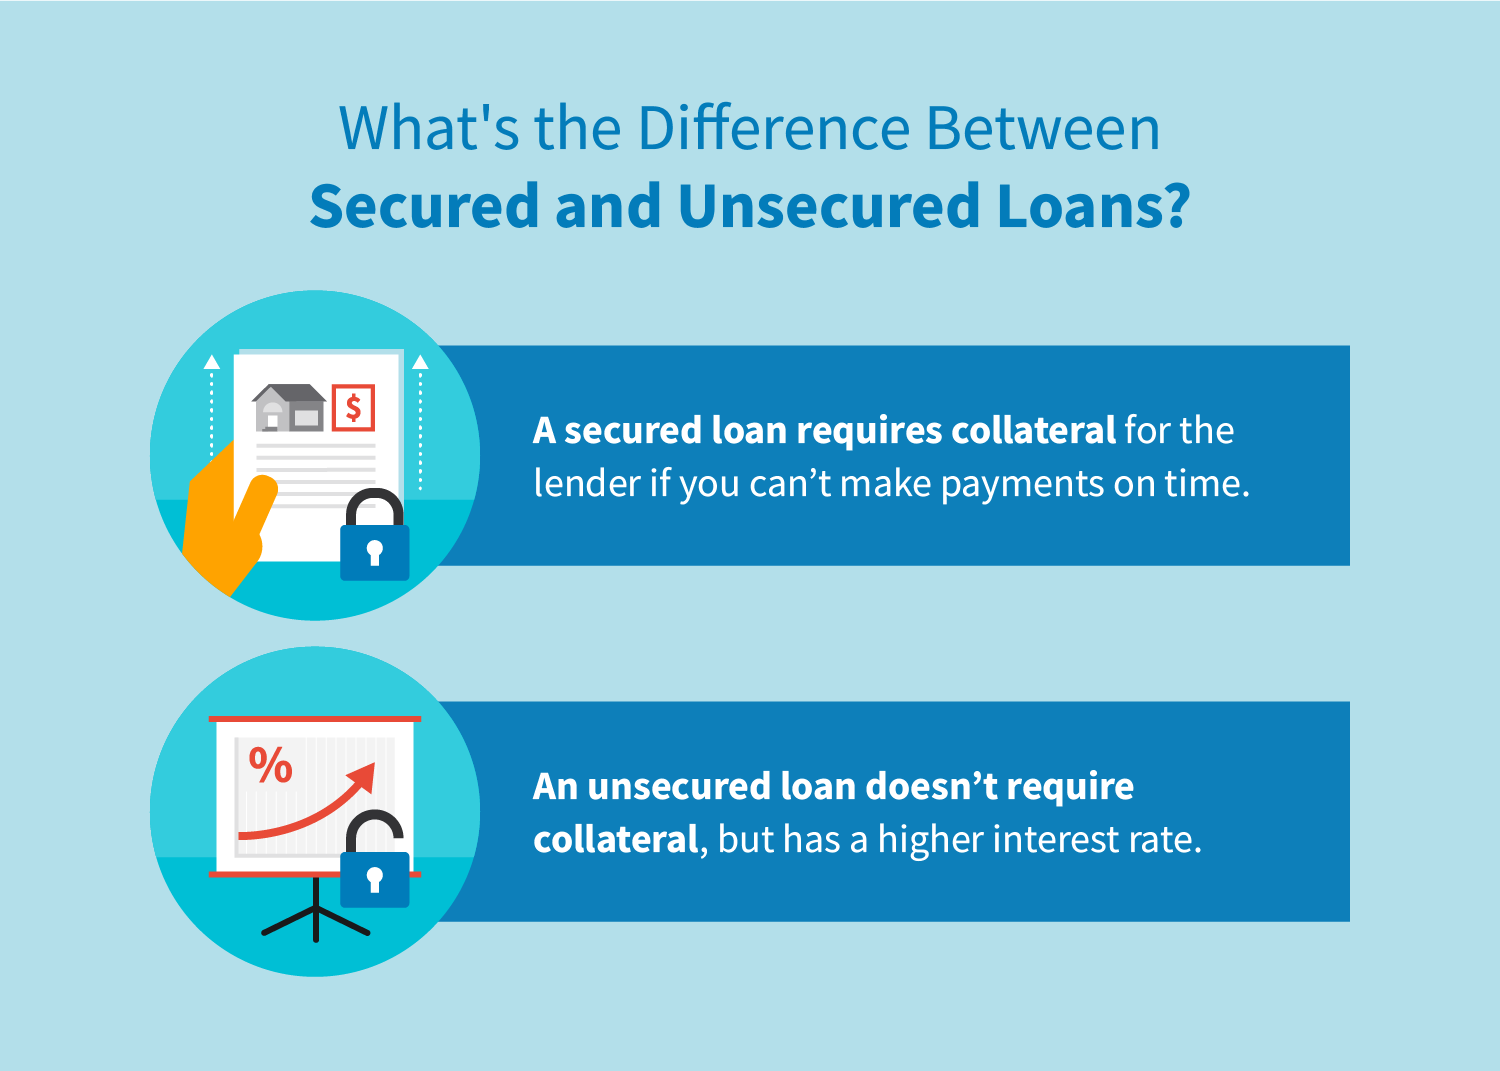 What's the difference between secured and unsecured loans?